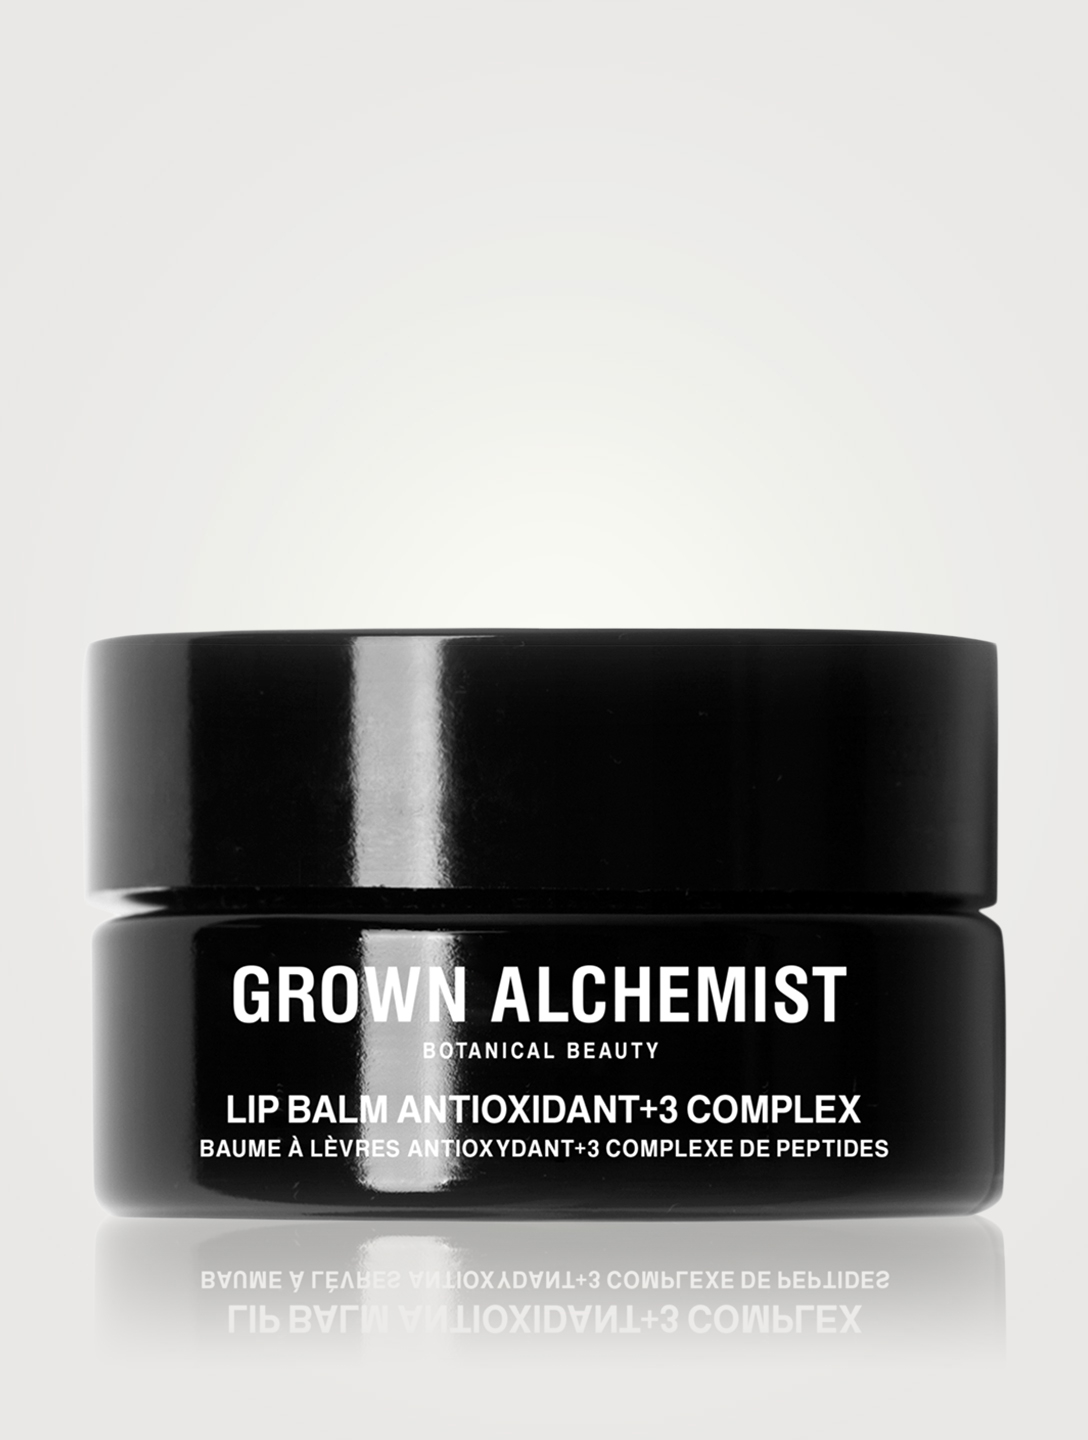 GROWN ALCHEMIST Lip Balm: Antioxidant+3 Complex Beauty